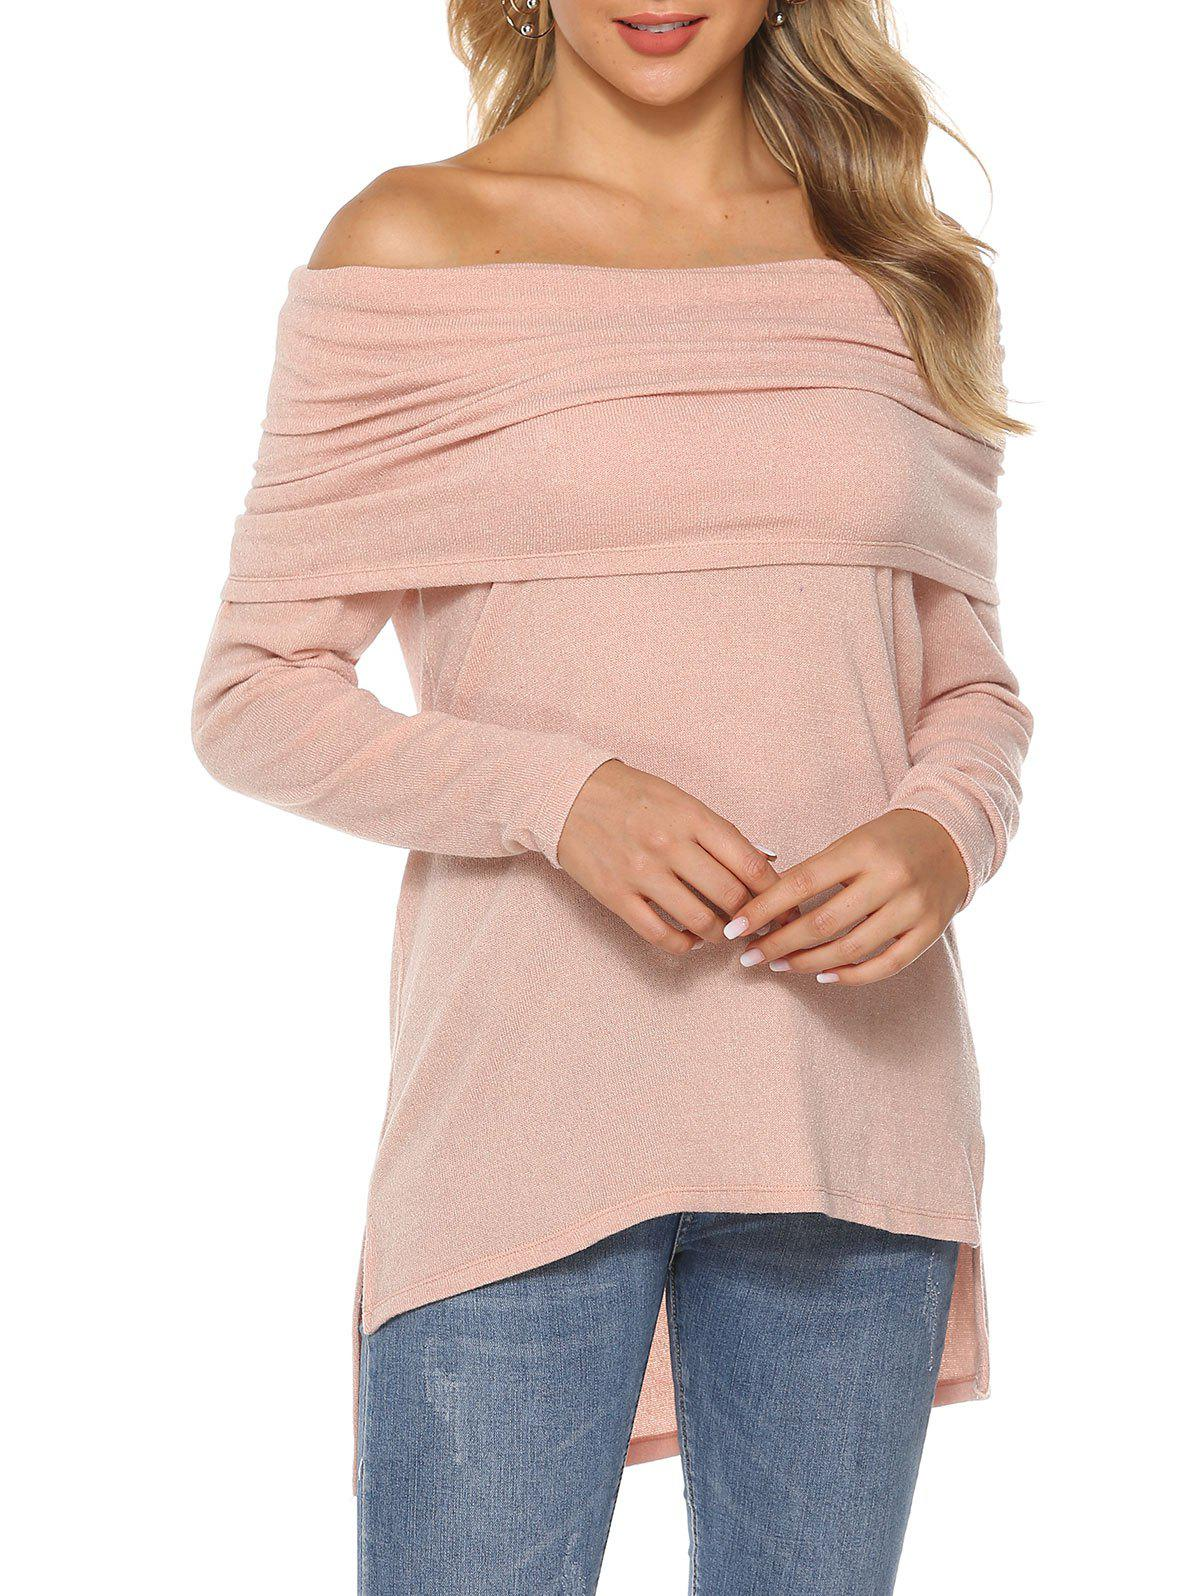 Raglan Sleeve High Low Slit Top - ROSE L